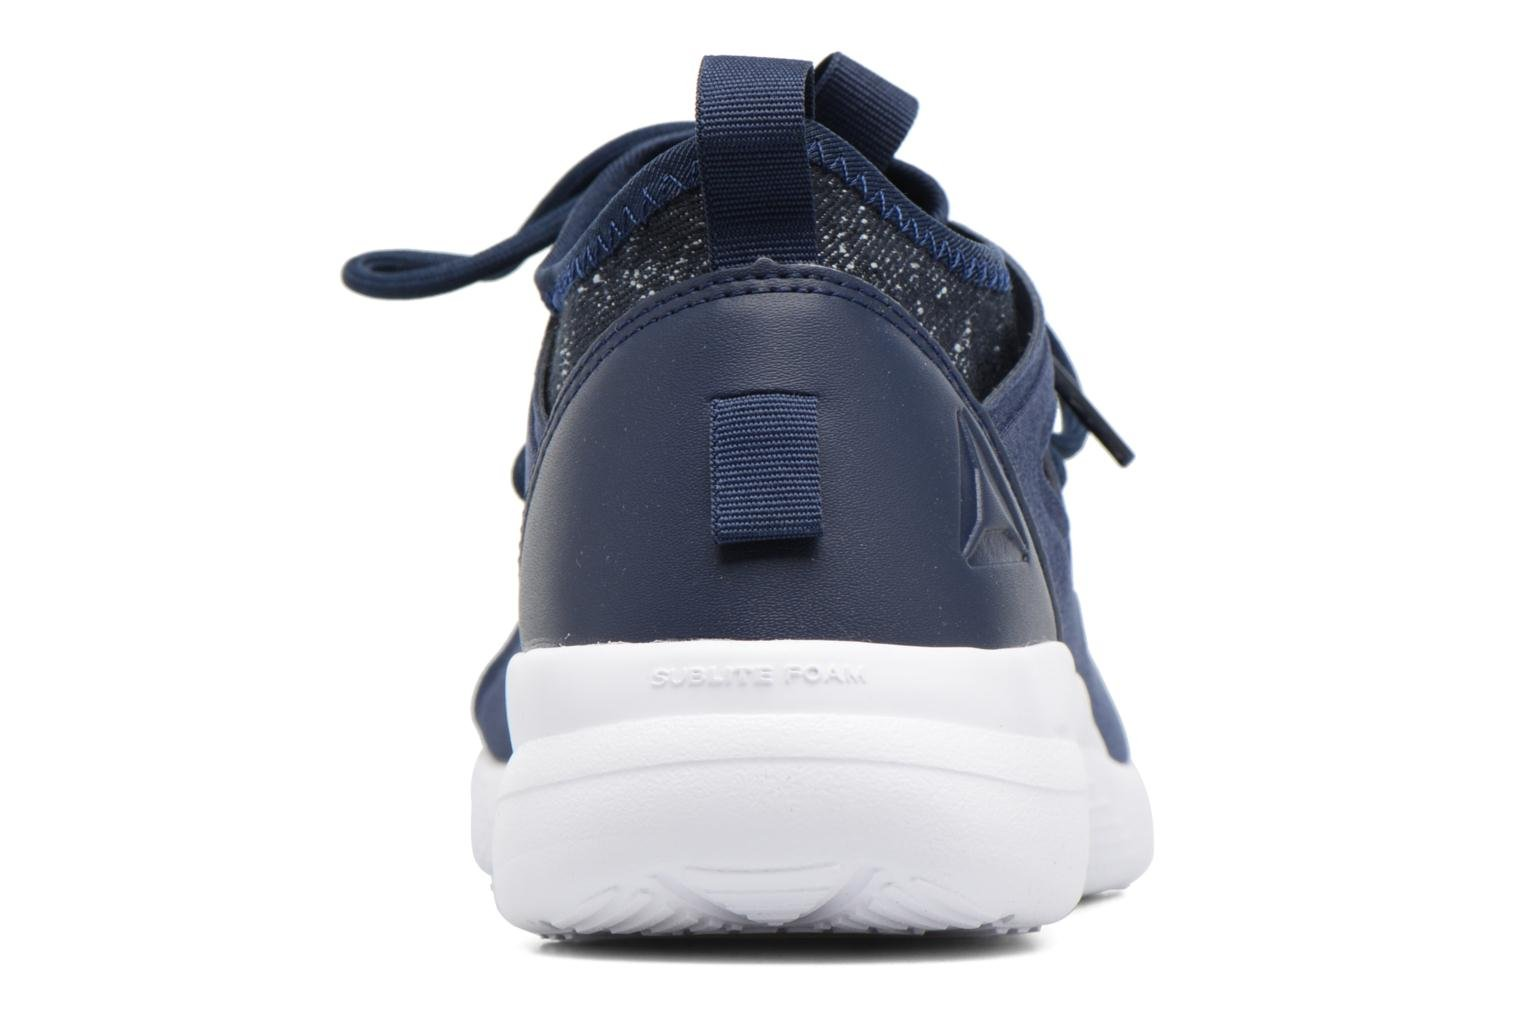 Reebok Cardio Motion Collegiate Navy/White